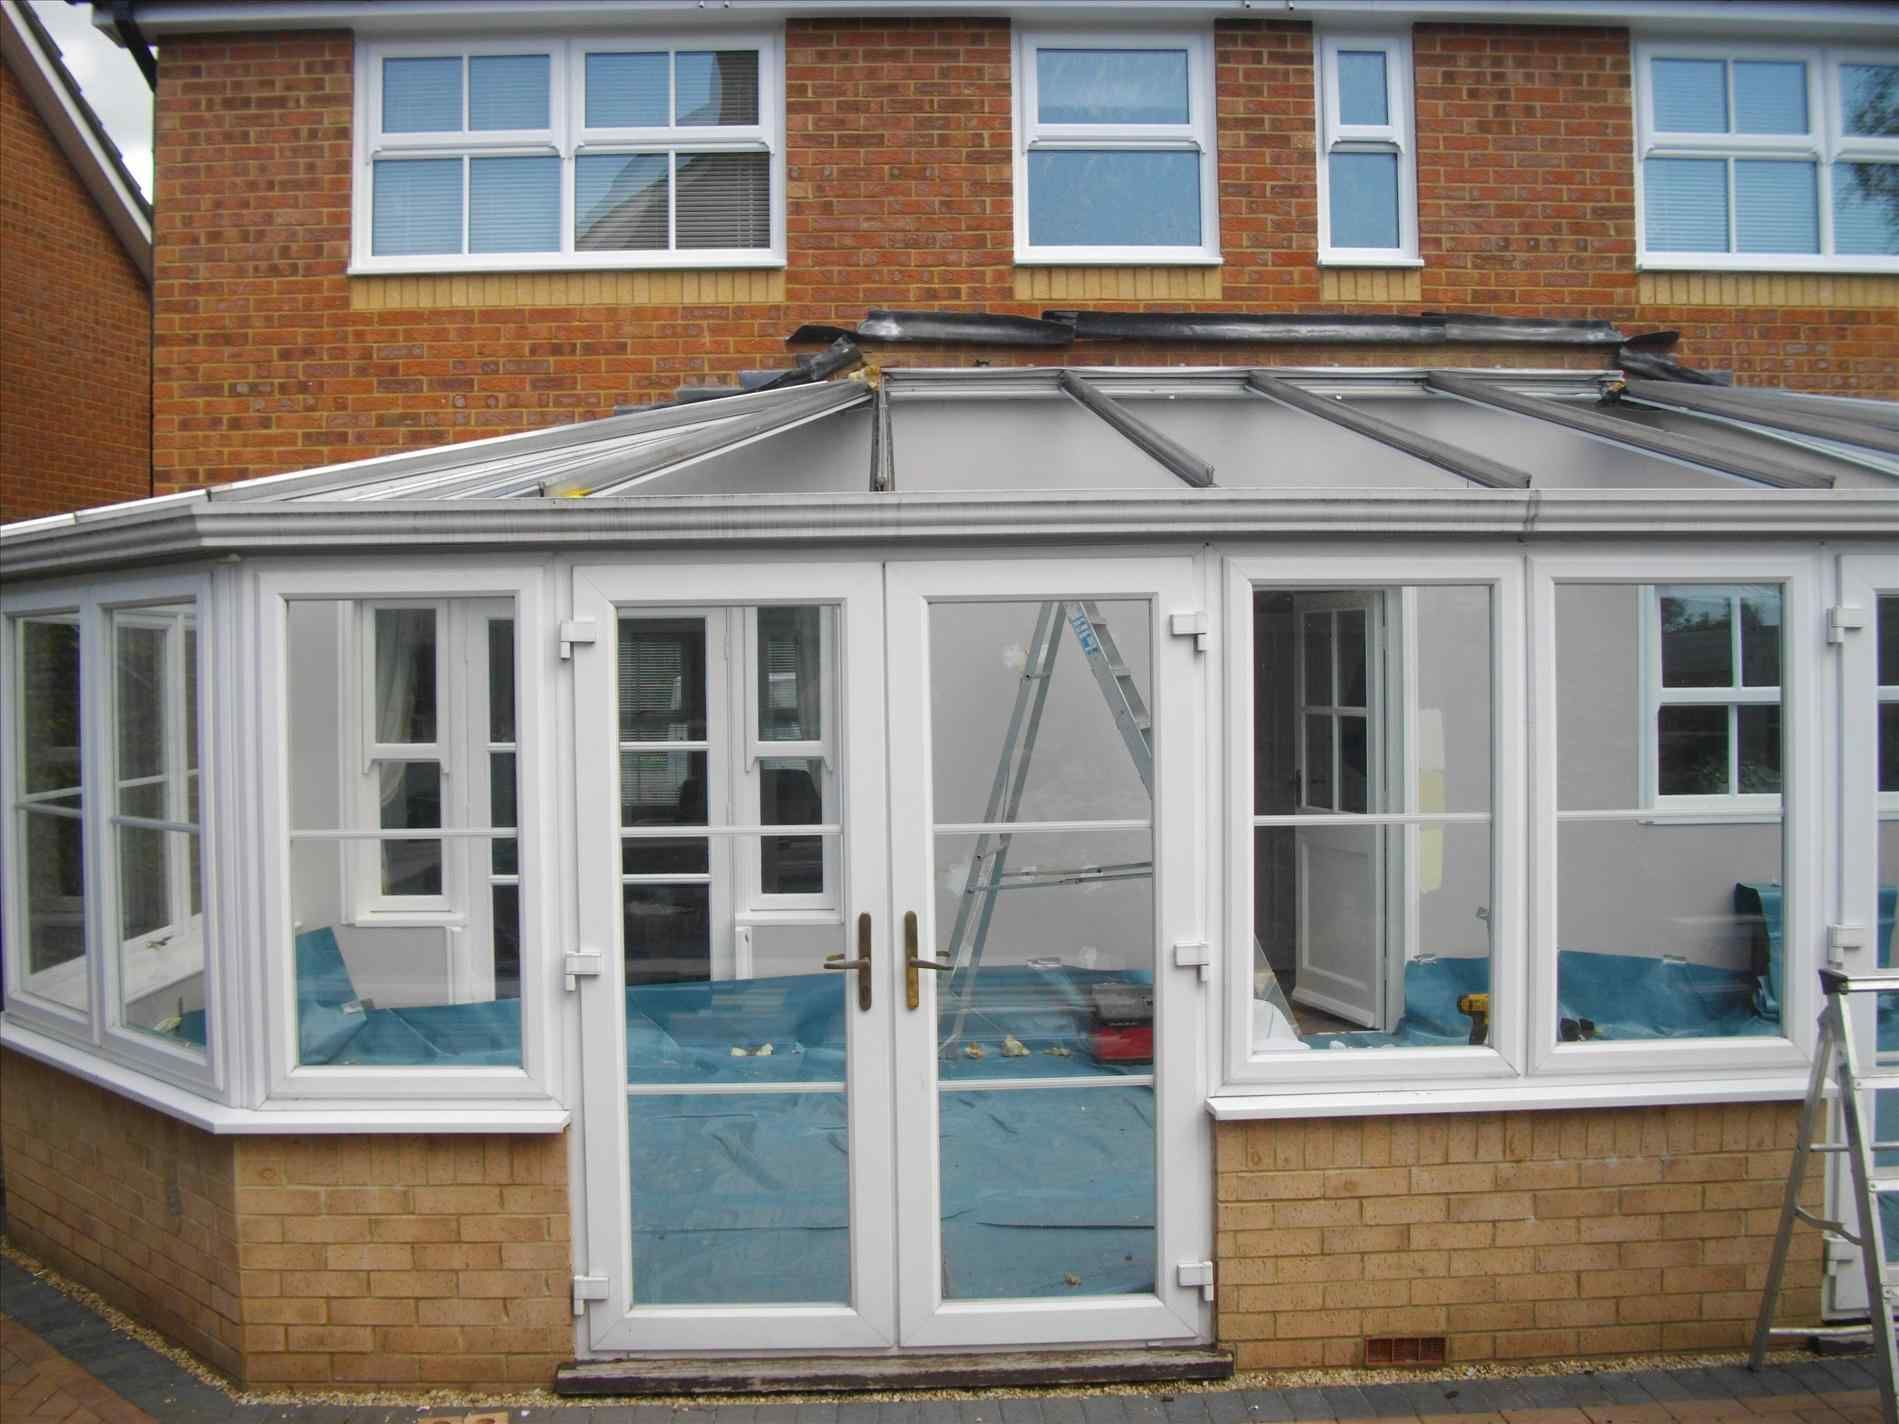 Conservatory Roof Design Home Roof Ideas Roof Design Conservatory Roof House Design